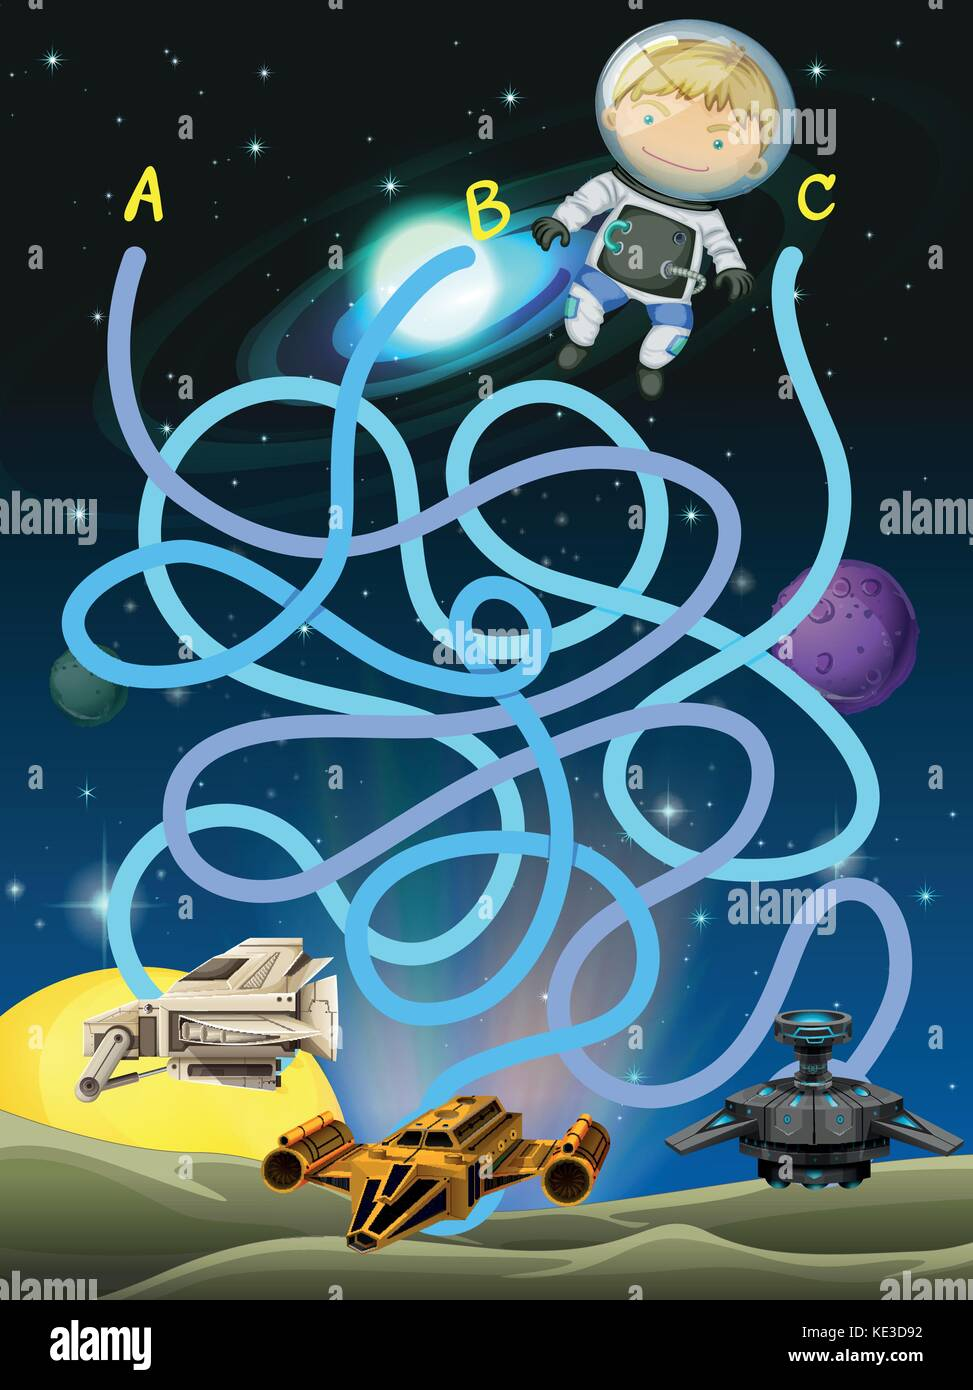 Game template with astronaut in space illustration Stock Vector